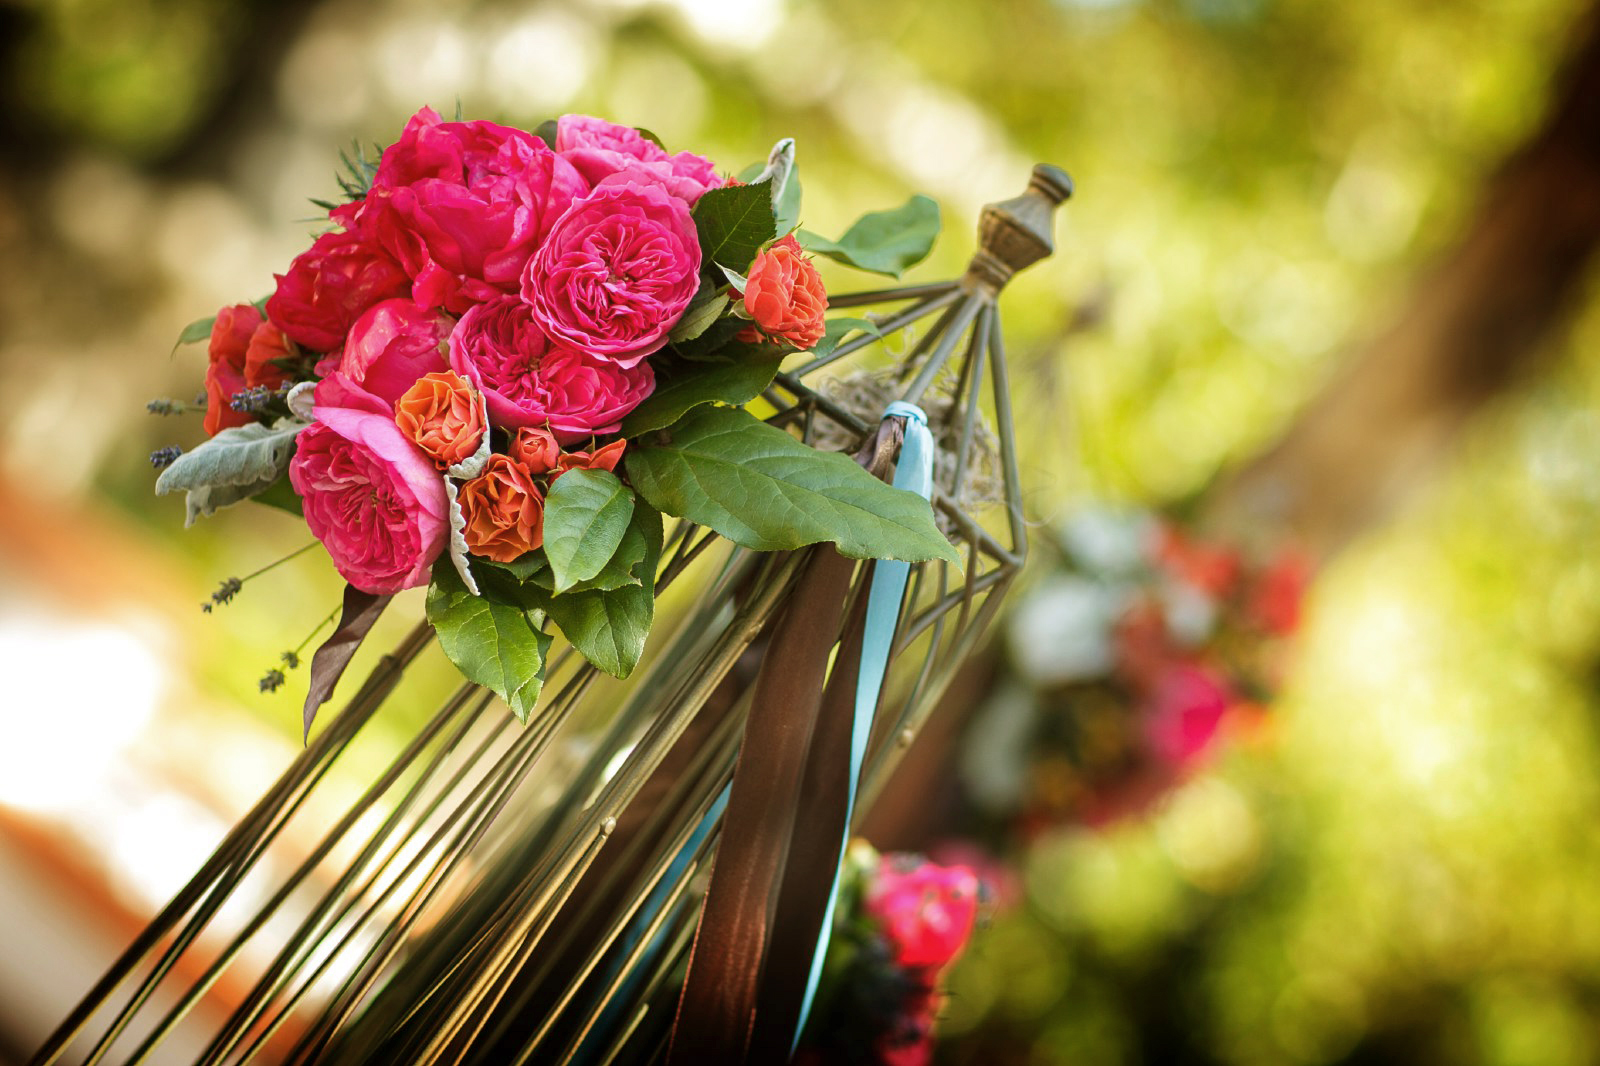 square-root-centerpiece-with-red-flowers